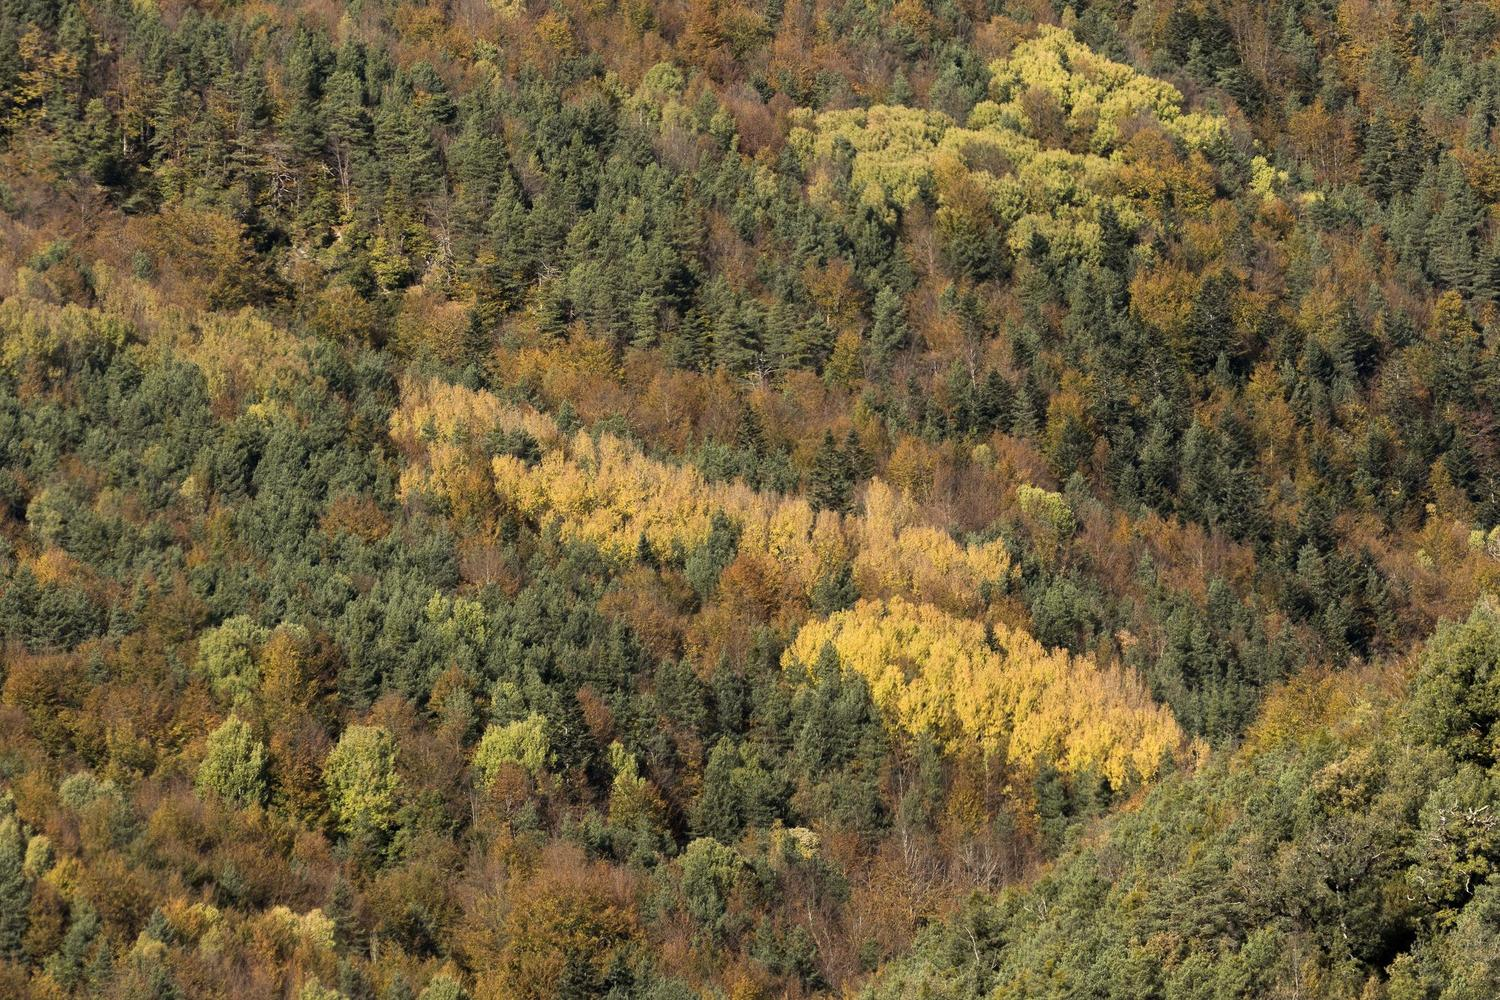 Autumn colours in the foothills of Monte Perdido